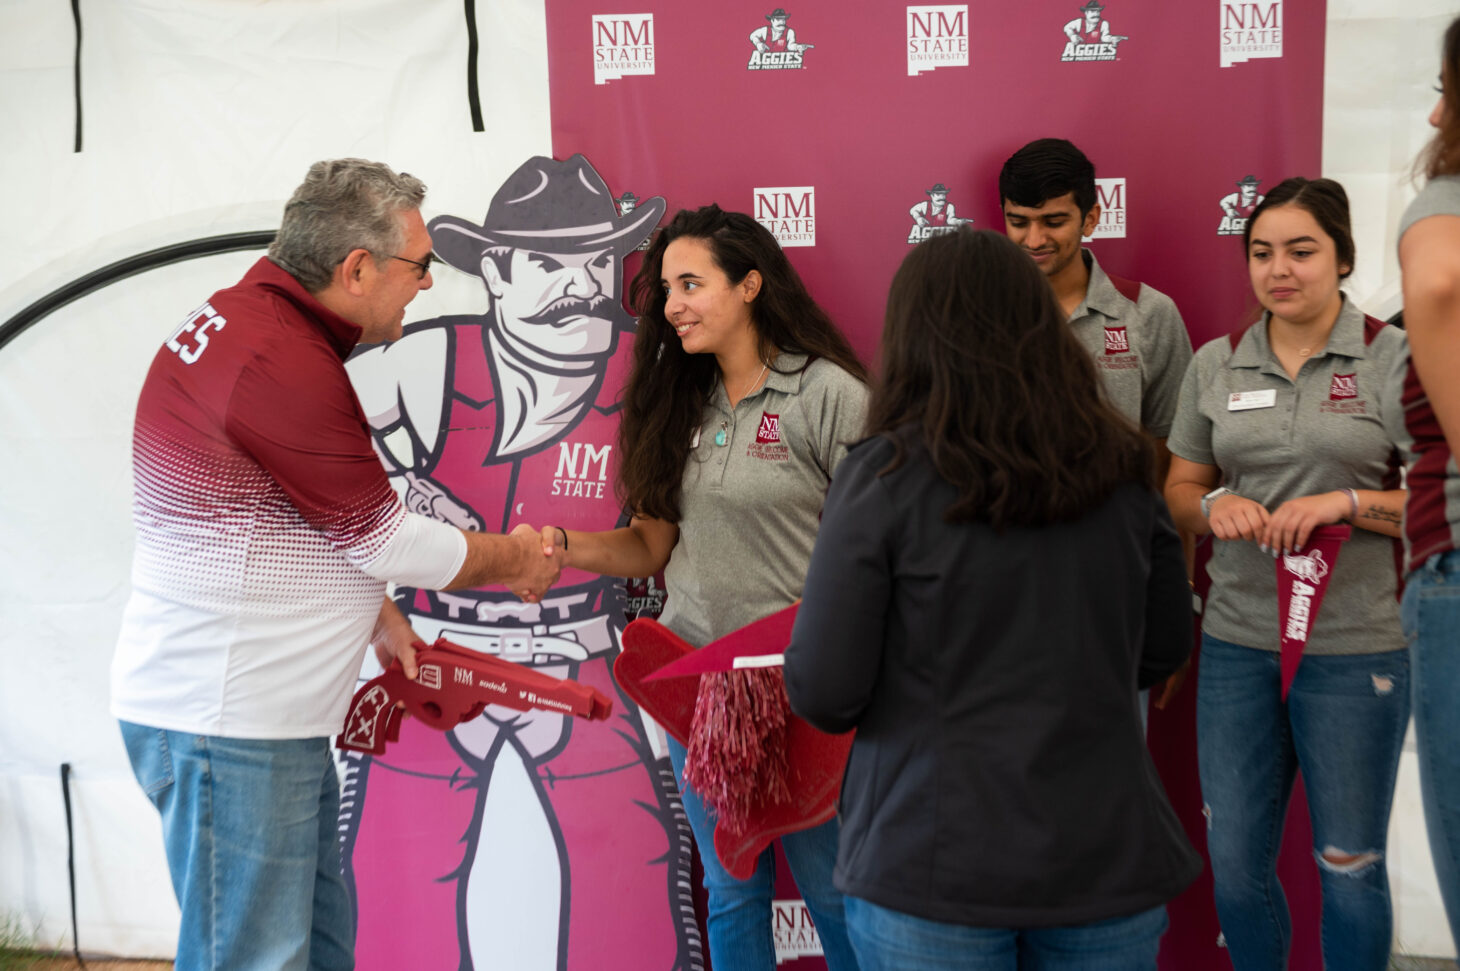 NMSU President John Floros, talks with NMSU students work as part of the Aggie Welcome and orientation staff Saturday August 14, 2021 during during the second day that campus dorms were open for students to move into. August 14, 2021. (NMSU photo by Josh Bachman)